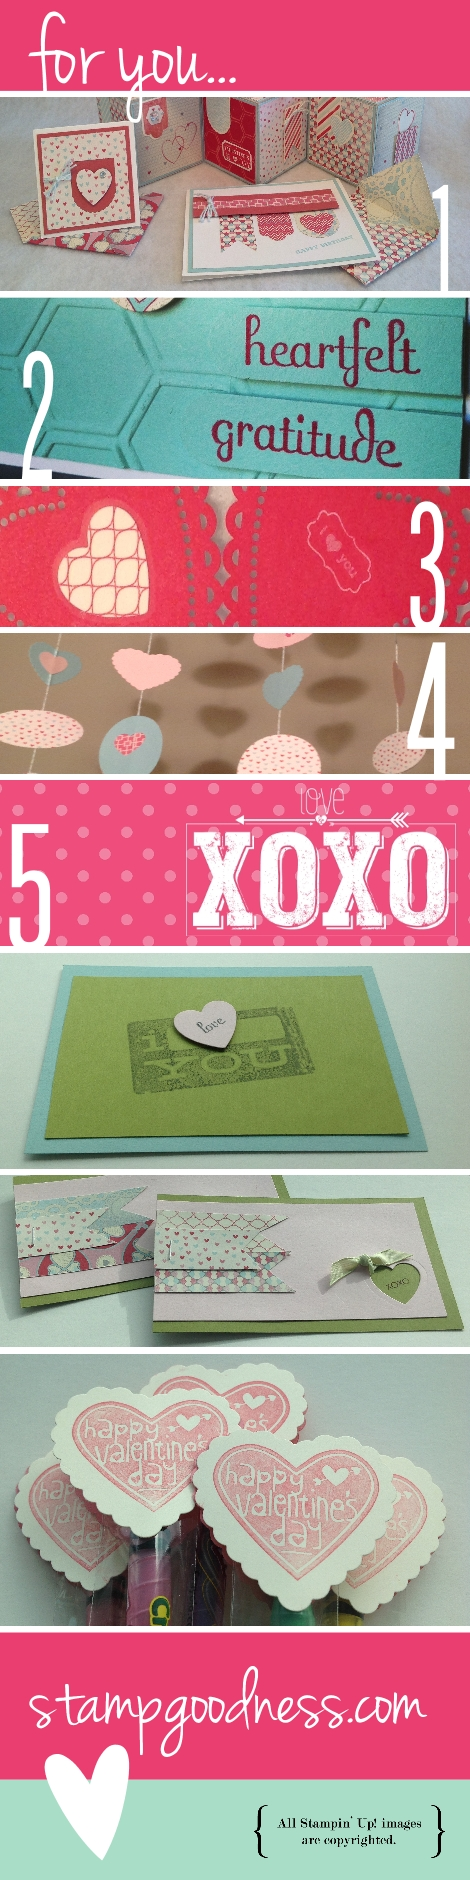 Valentine's Wishes Hearts a Flutter Stampin Up